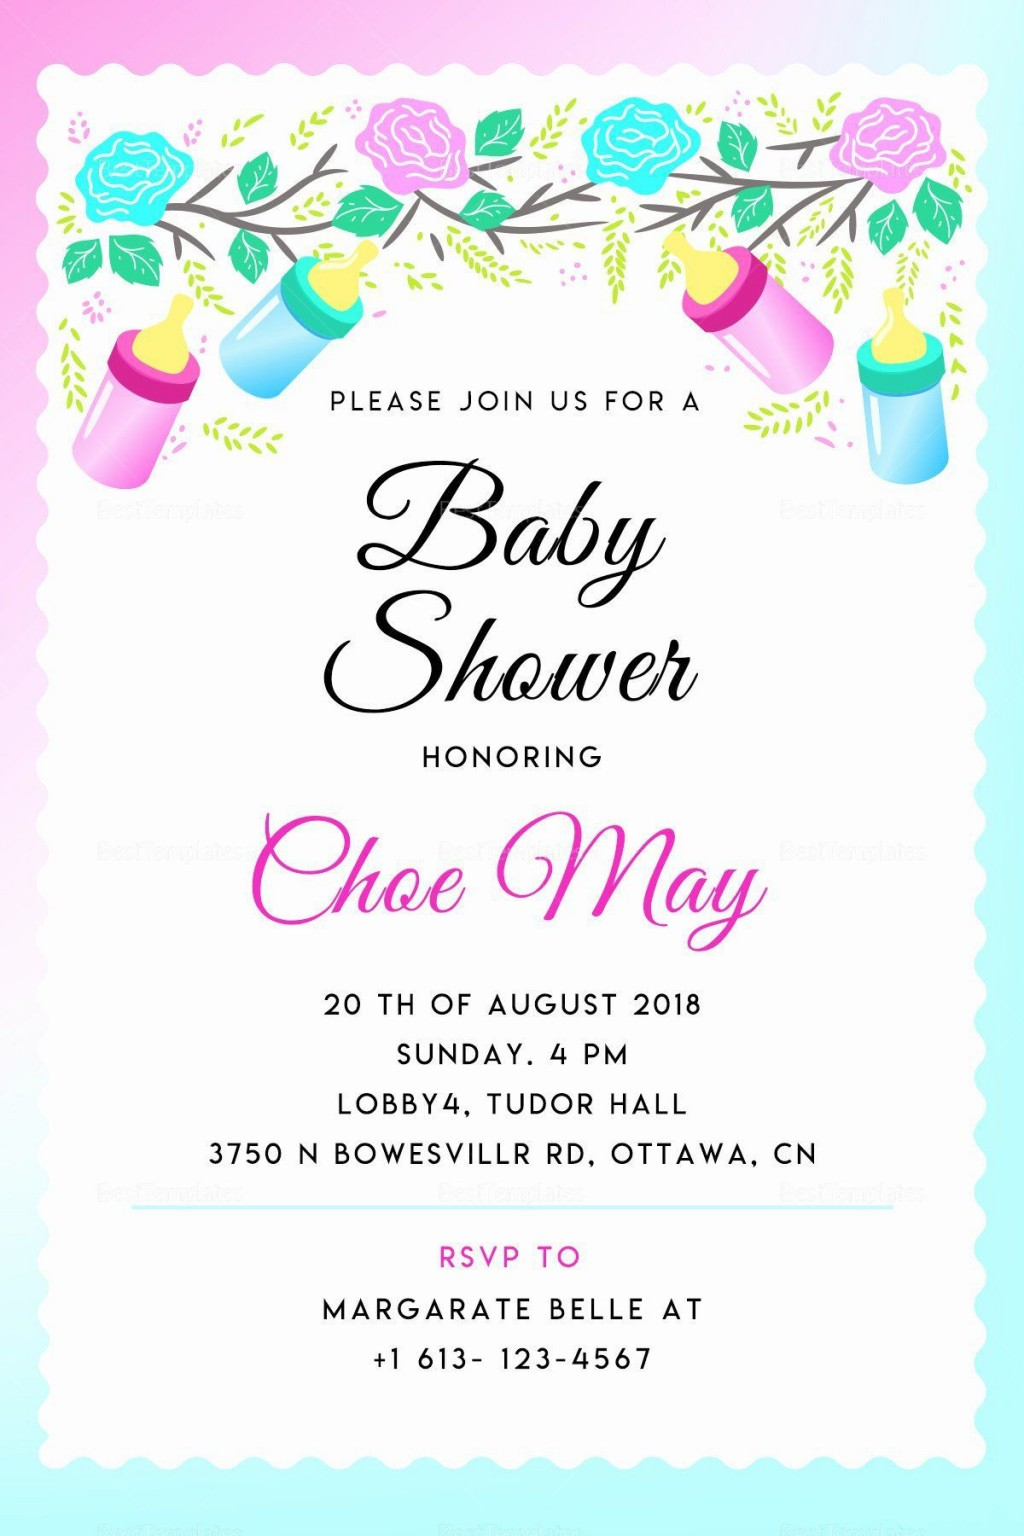 000 Sensational Baby Shower Invitation Template Word Picture  Office Wording Sample Work DownloadLarge